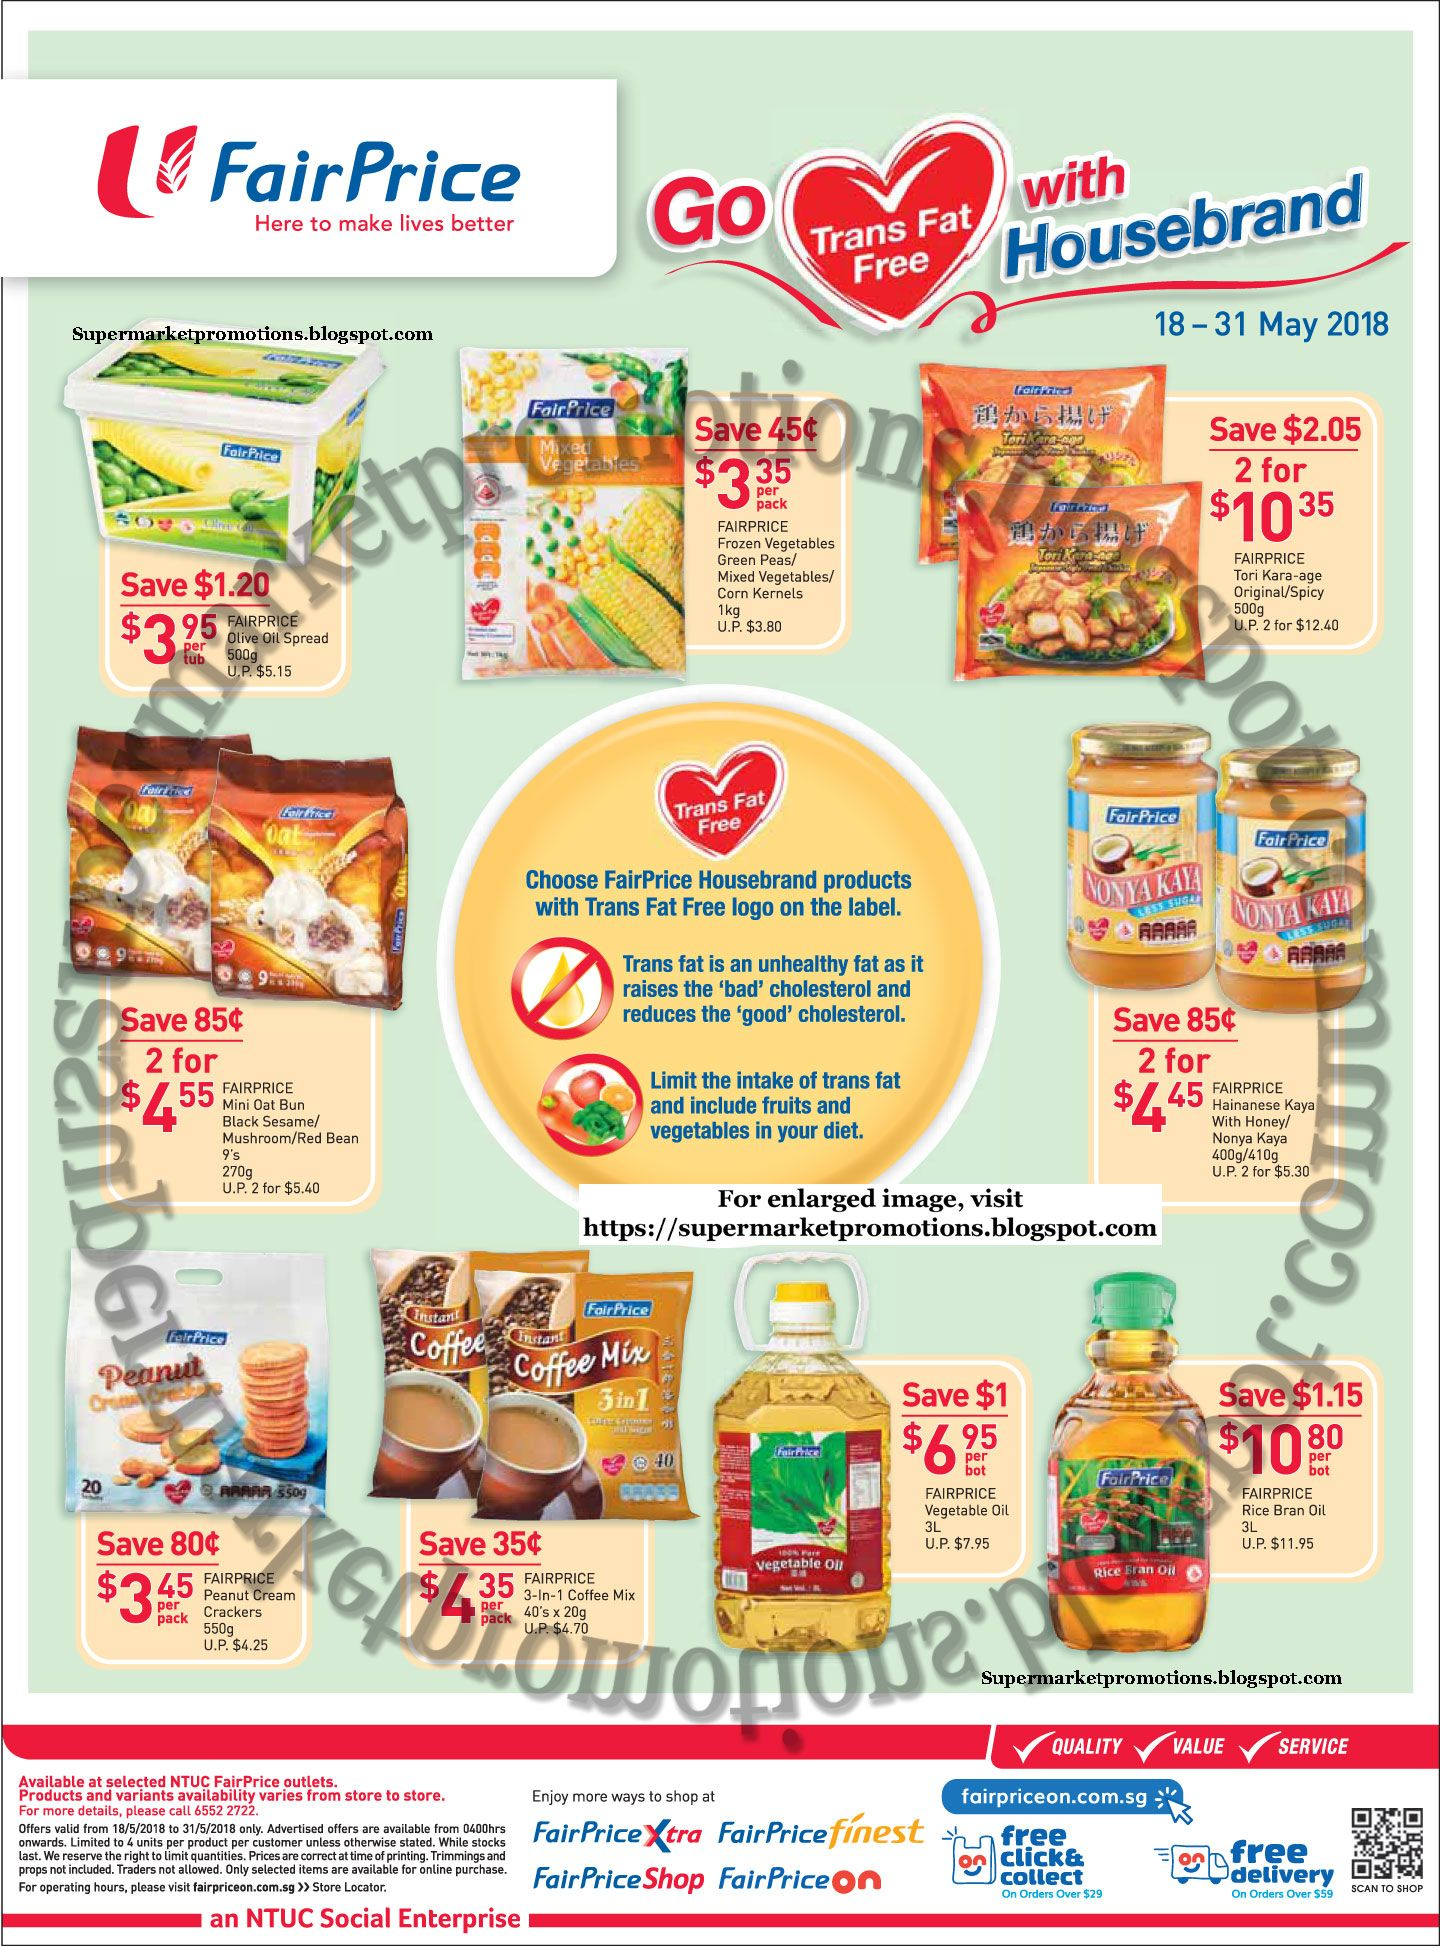 Pin On Supermarket Promotions